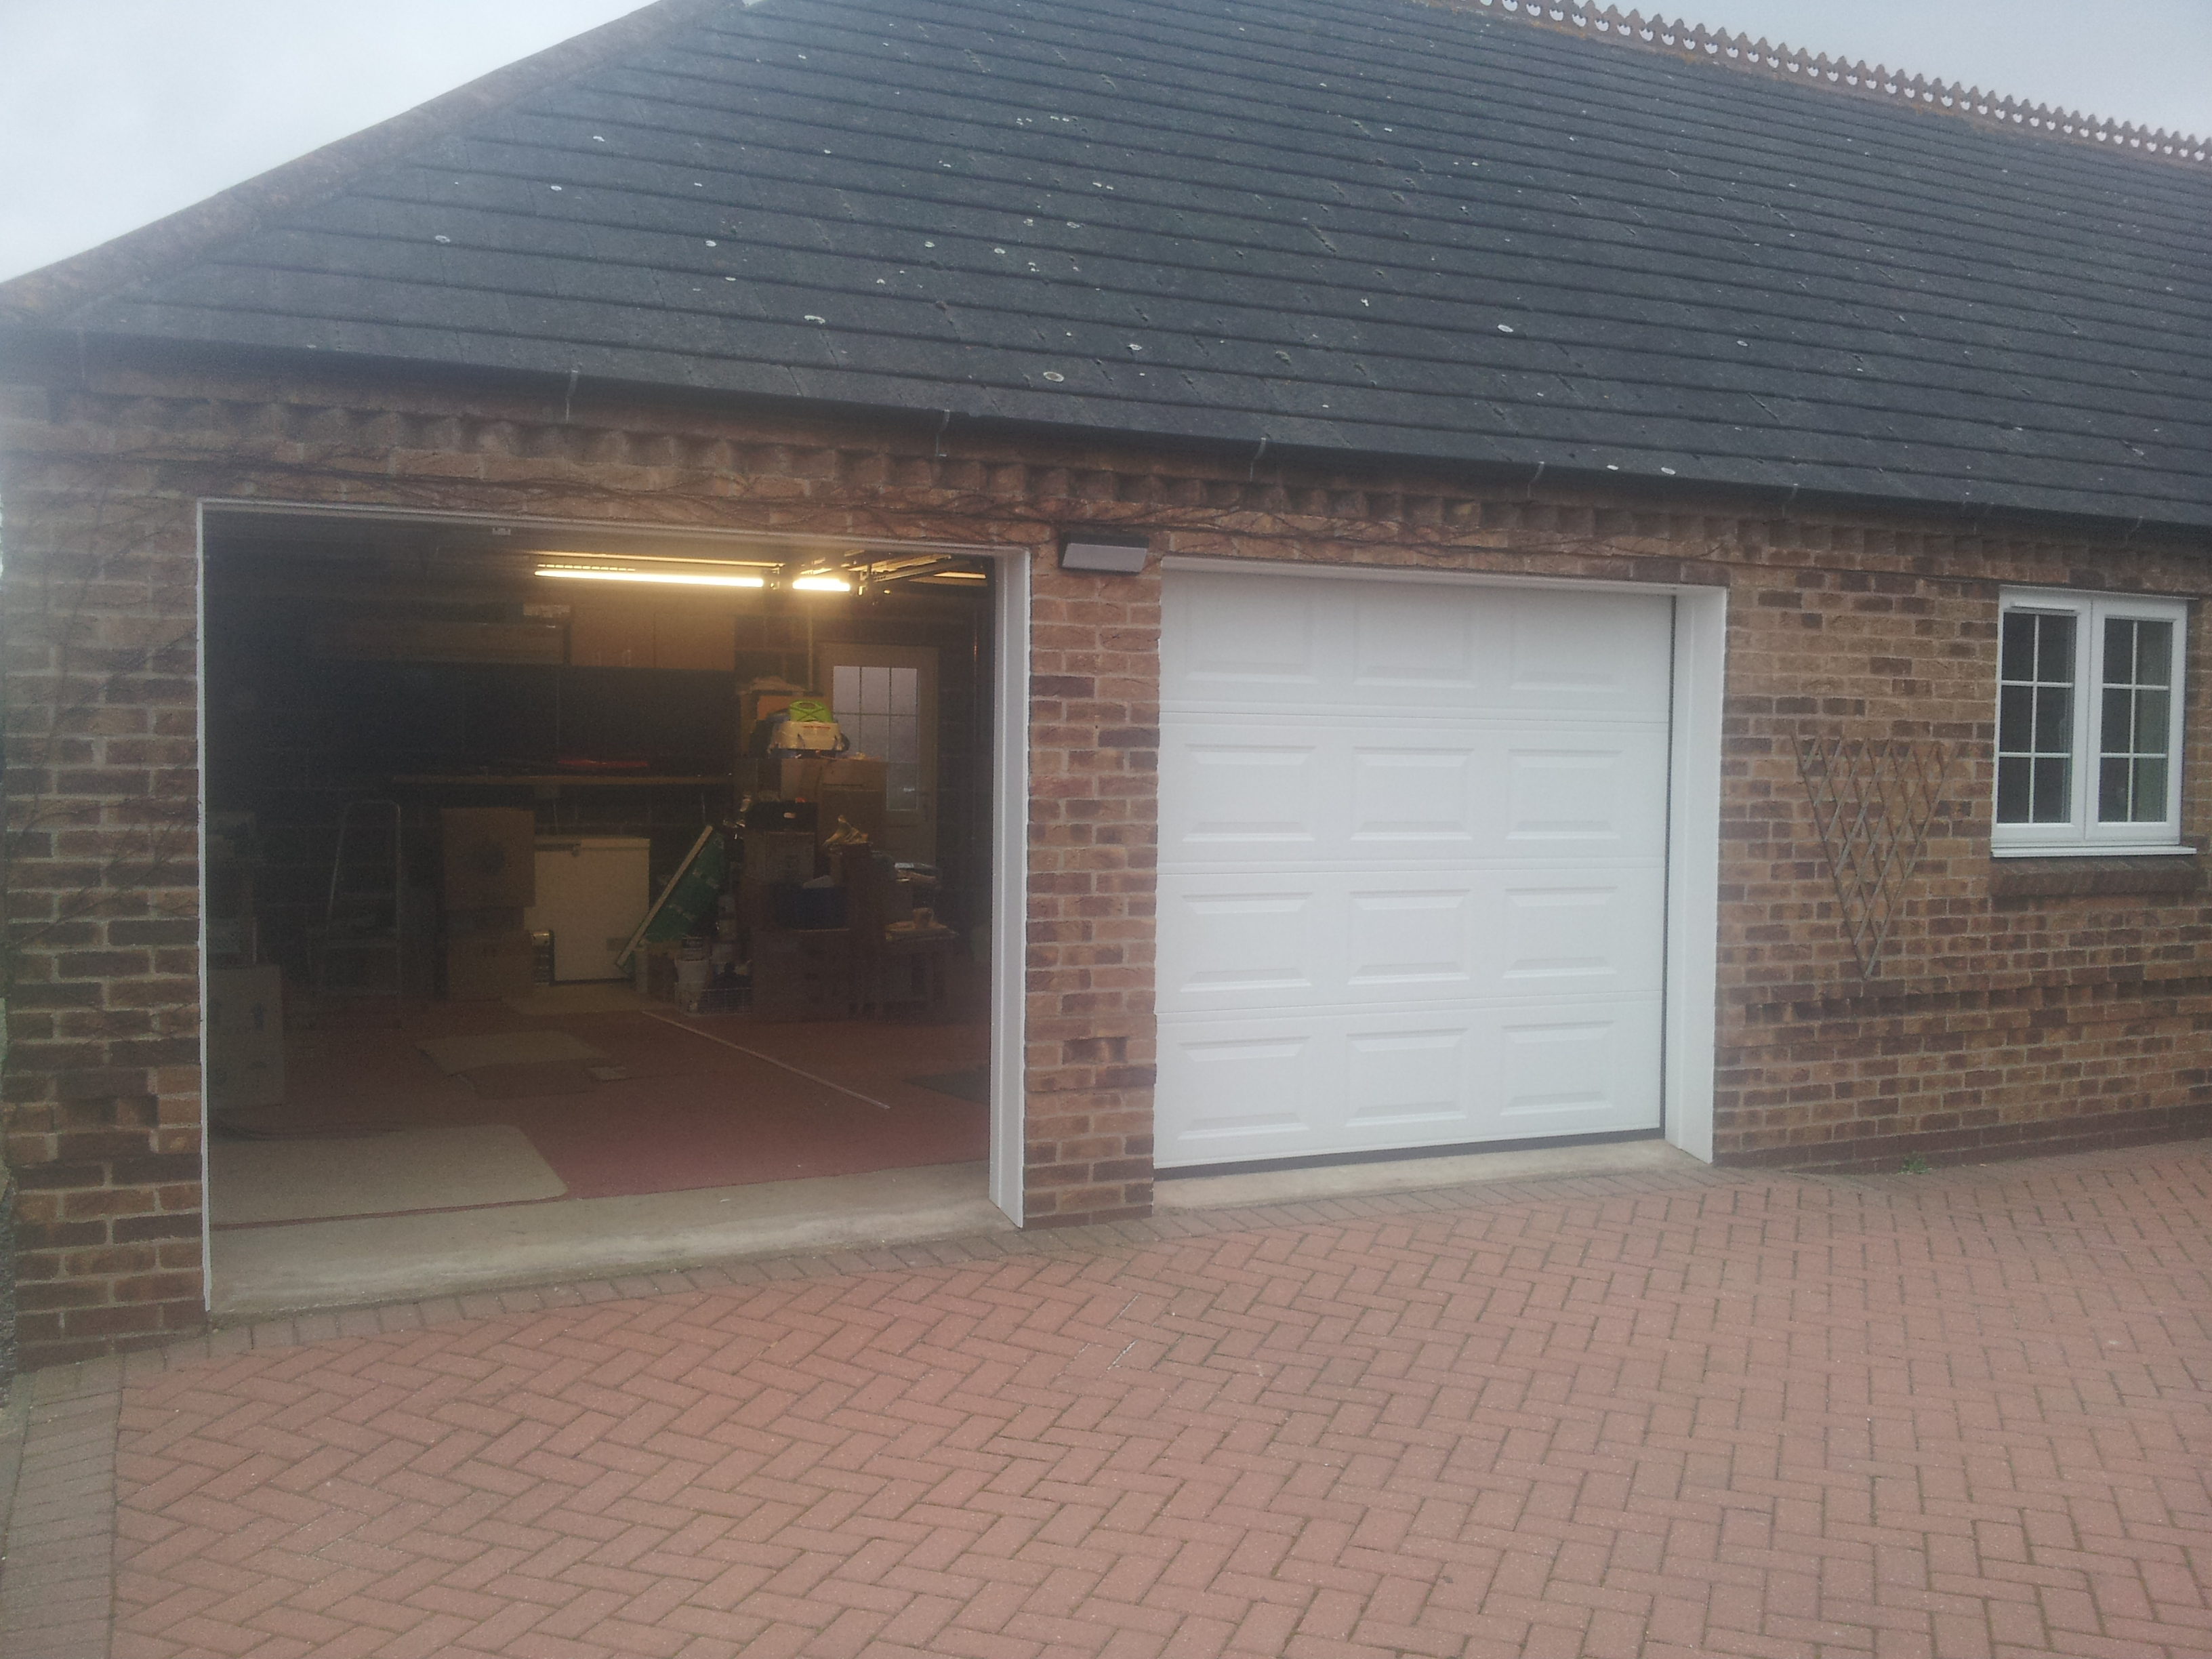 2448 #7C5D4F New Garage Doors Newark – Garage Door Company Grantham save image Garage Doors New 36873264